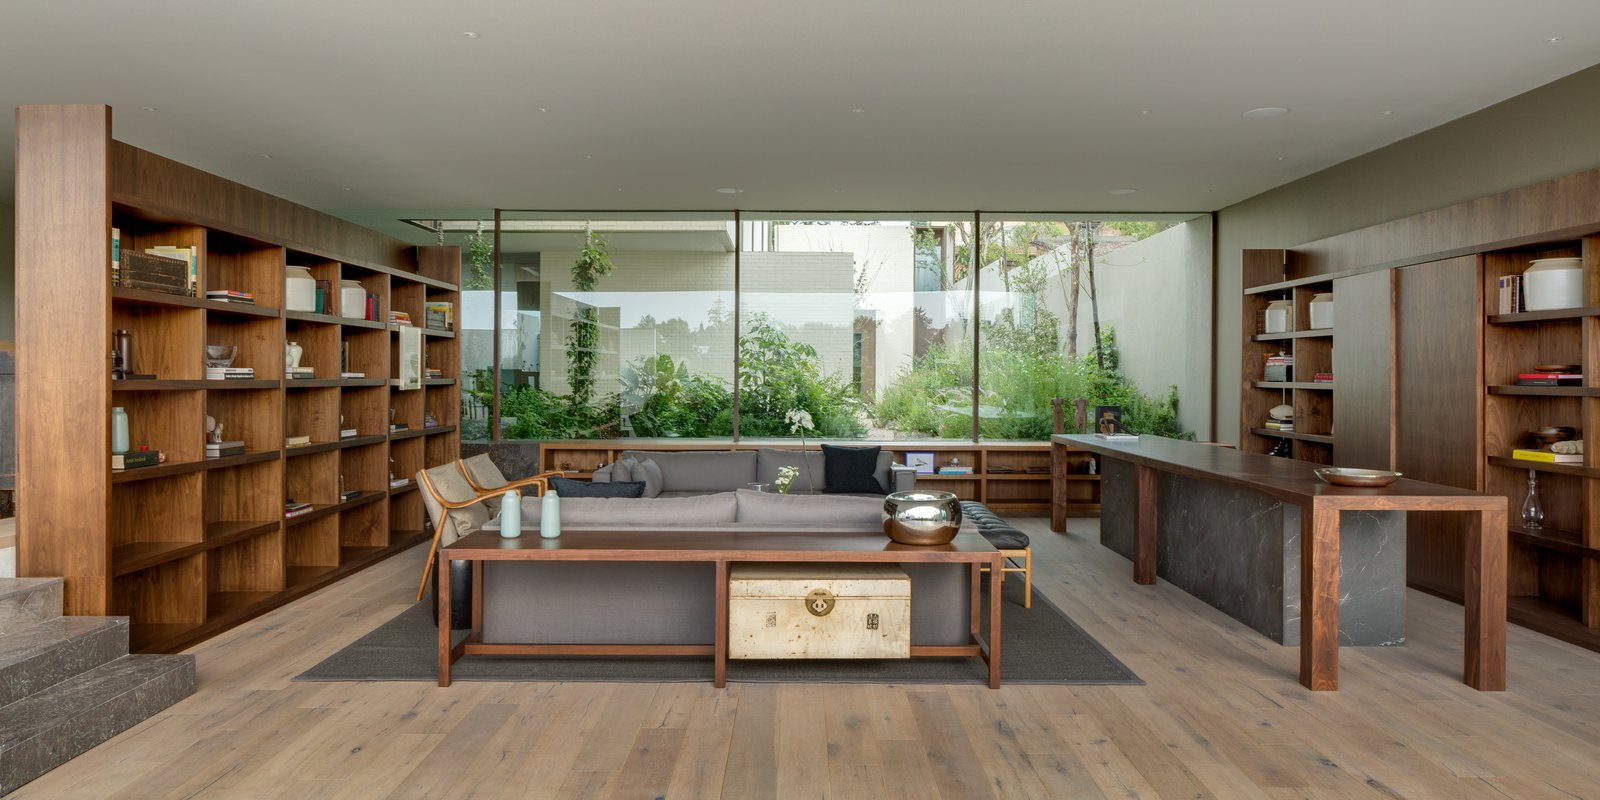 Living Room, Chair, Console Tables, Sofa, Rug Floor, Table, and Medium Hardwood Floor  Photos from A Serene Home in Mexico Weaves Around Verdant Gardens